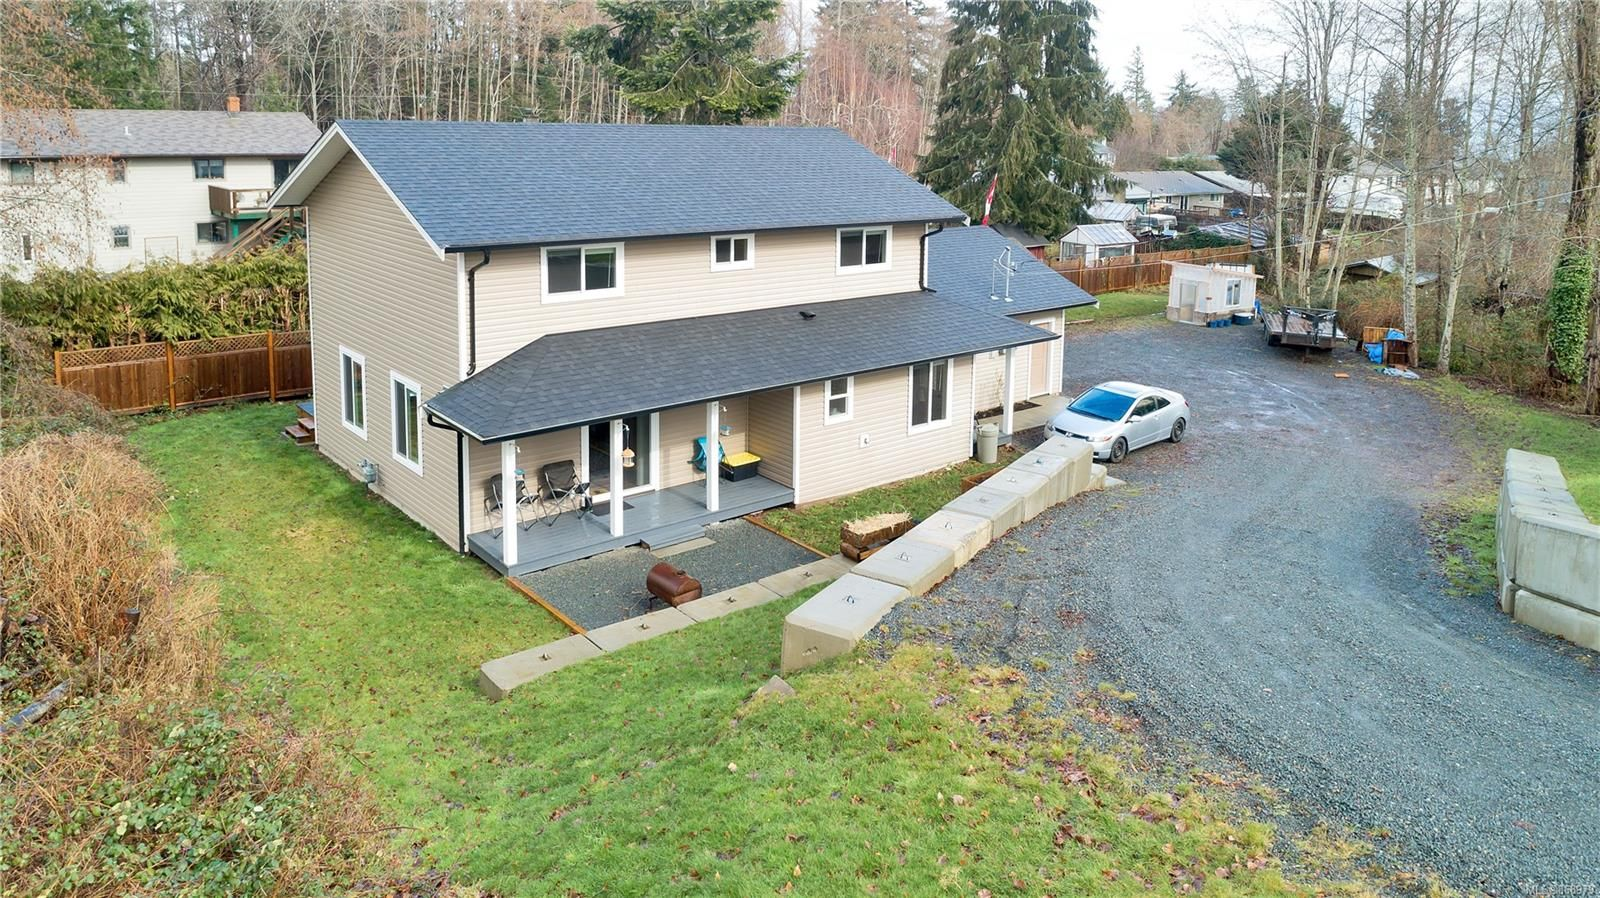 Main Photo: 122 Skipton Cres in : CR Campbell River South House for sale (Campbell River)  : MLS®# 868979